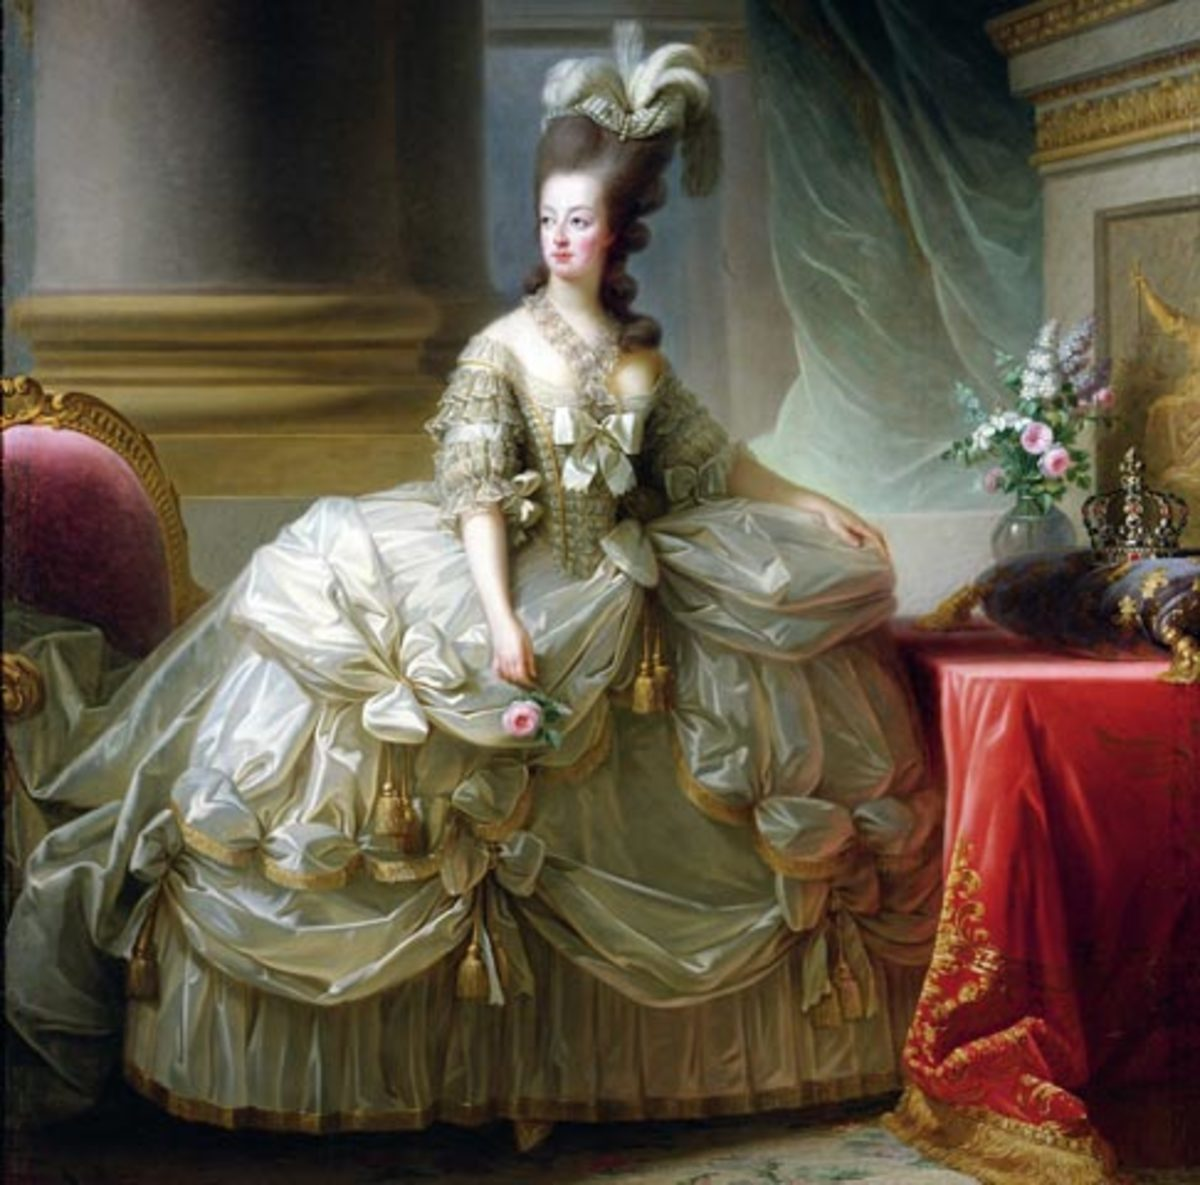 Did Marie Antoinette Deserve The Death Penalty or She Was Only An Poor Victim of The French Revolution?